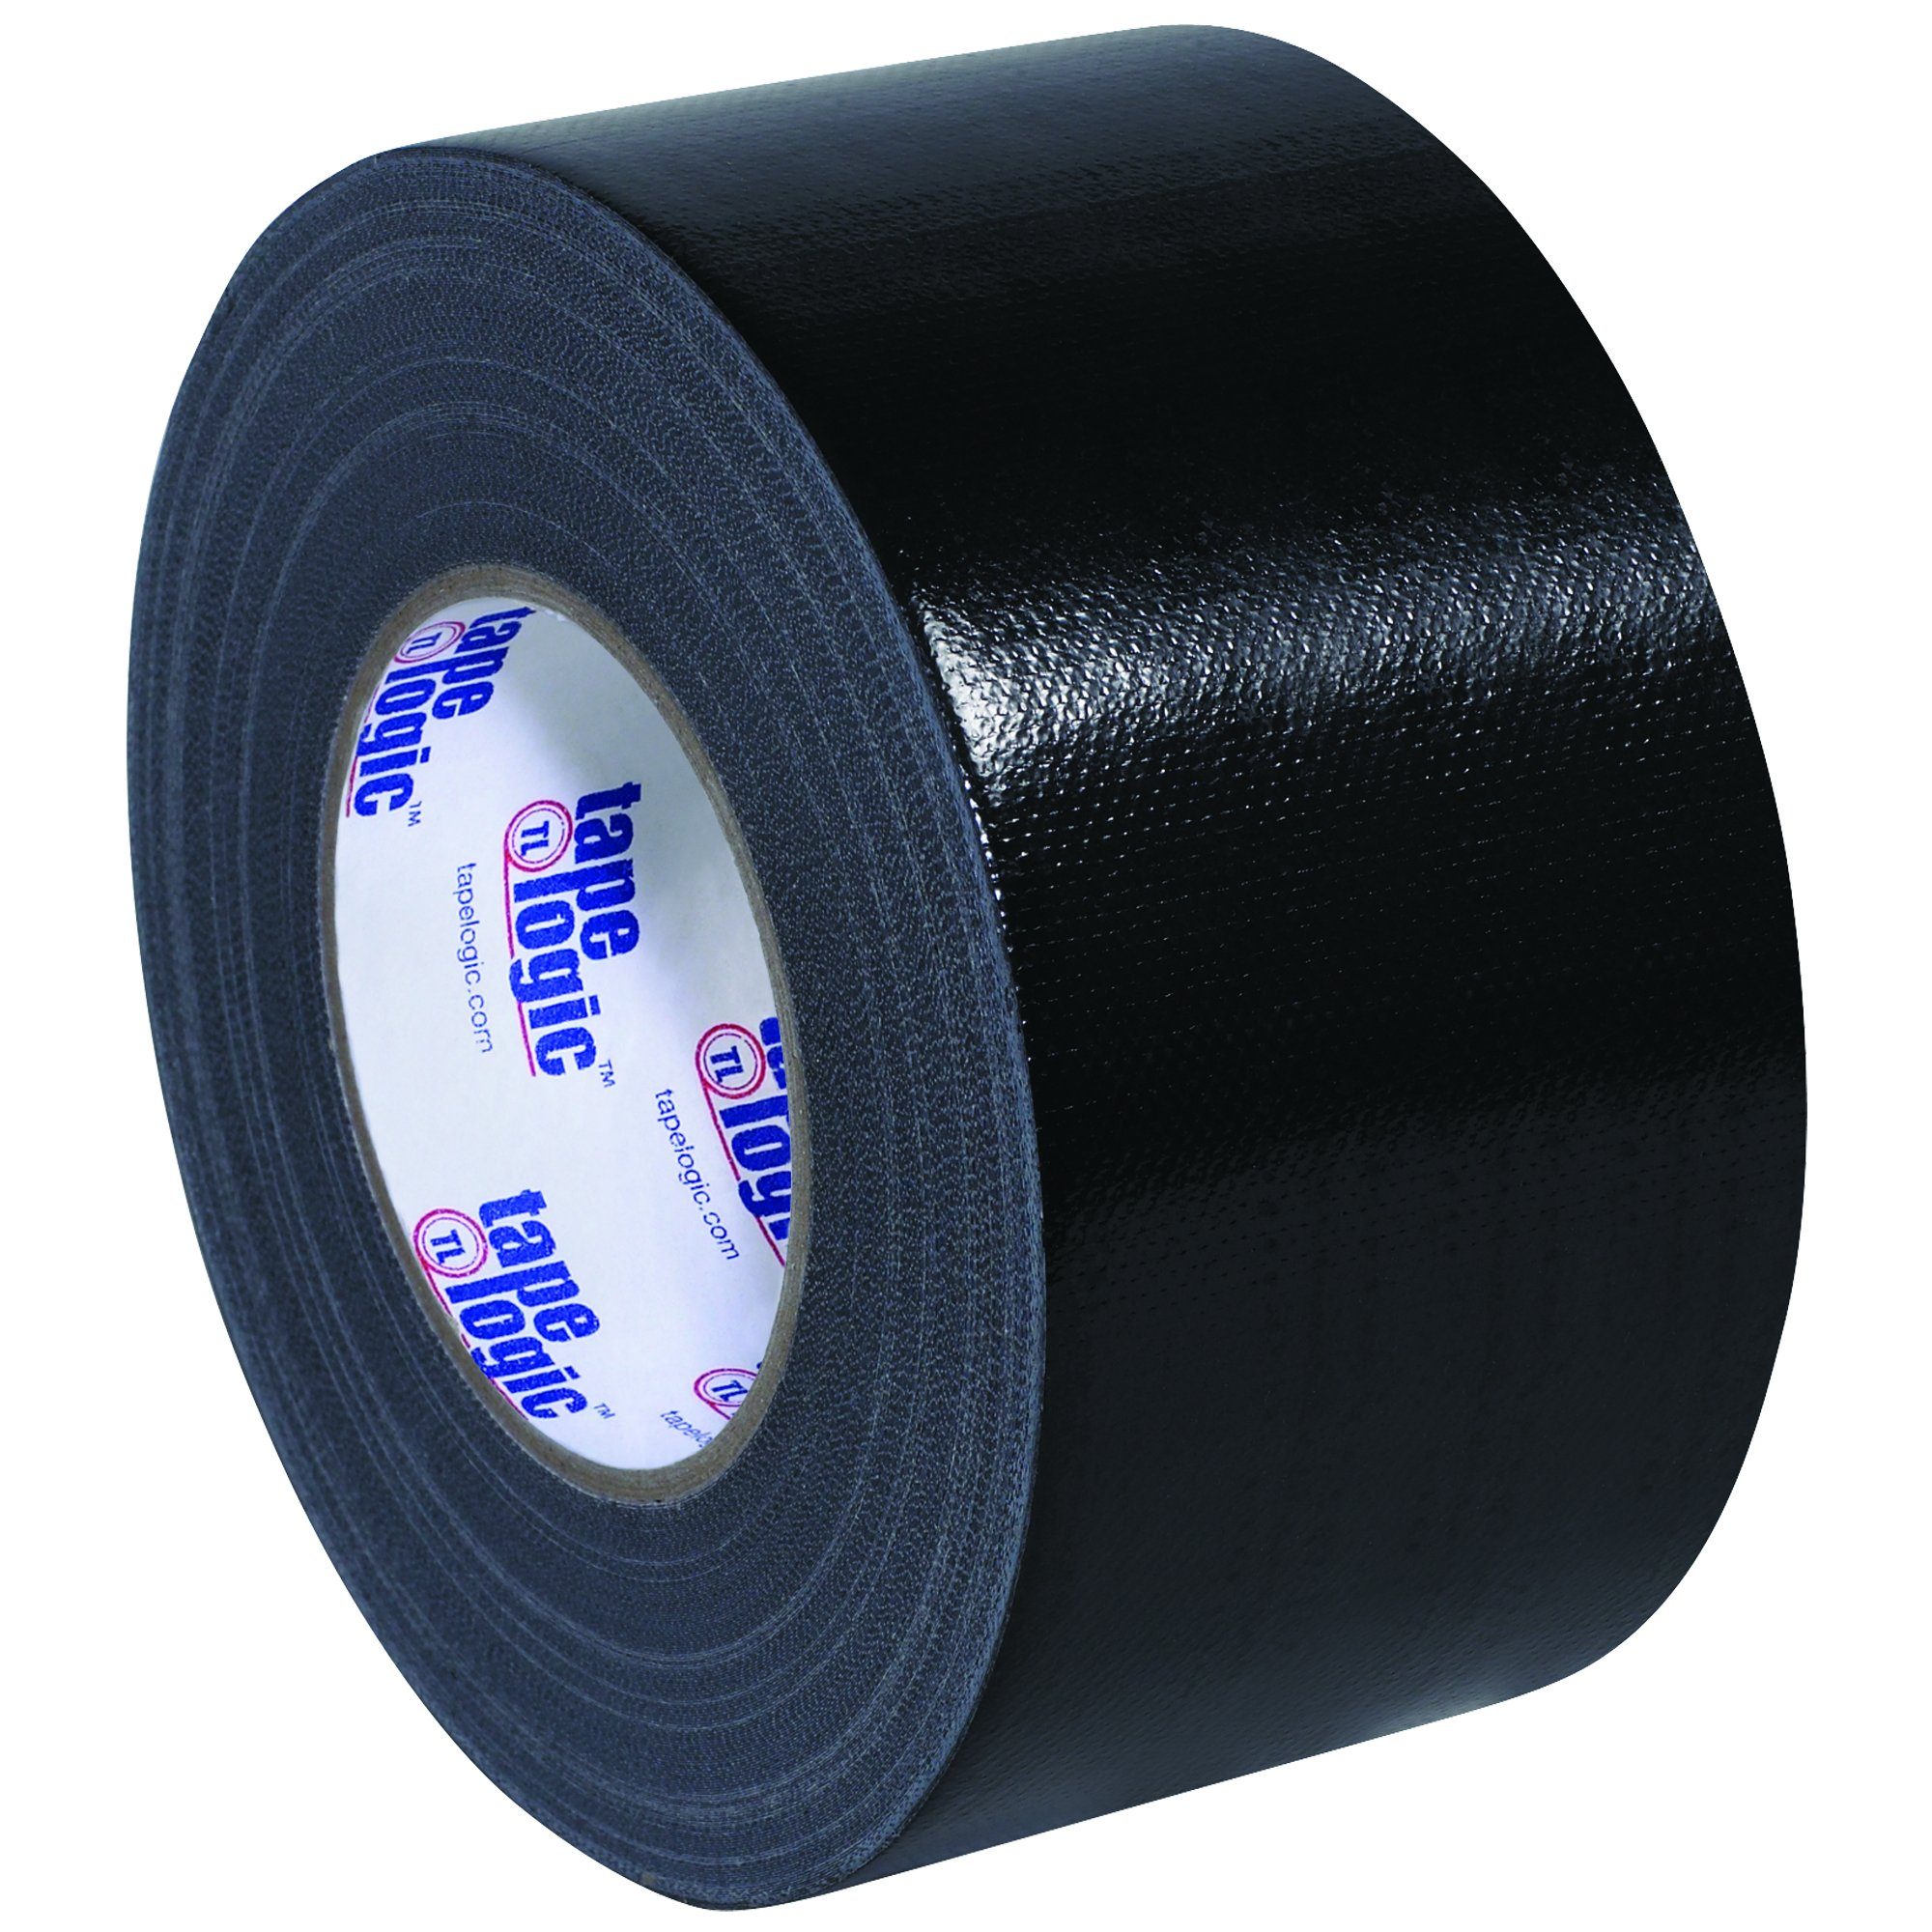 BOX USA BT988100B Black Tape Logic Duct Tape, 10 mil, 3'' x 60 yd. (Pack of 16) by BOX USA